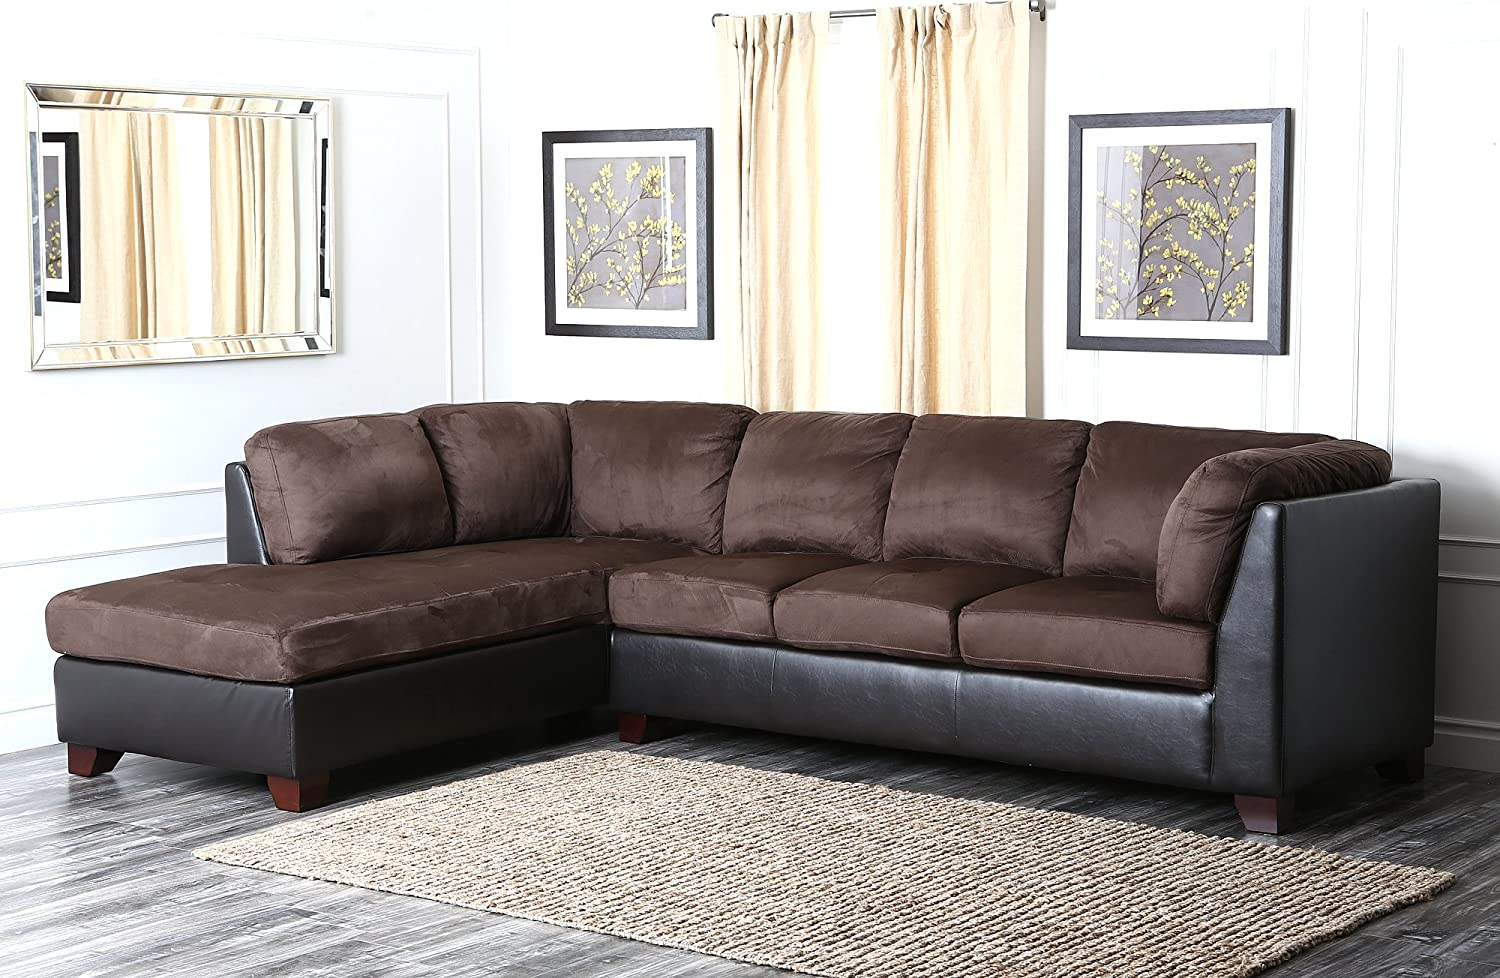 Monarch Chocolate Brown Microfiber Sectional Sofa Www